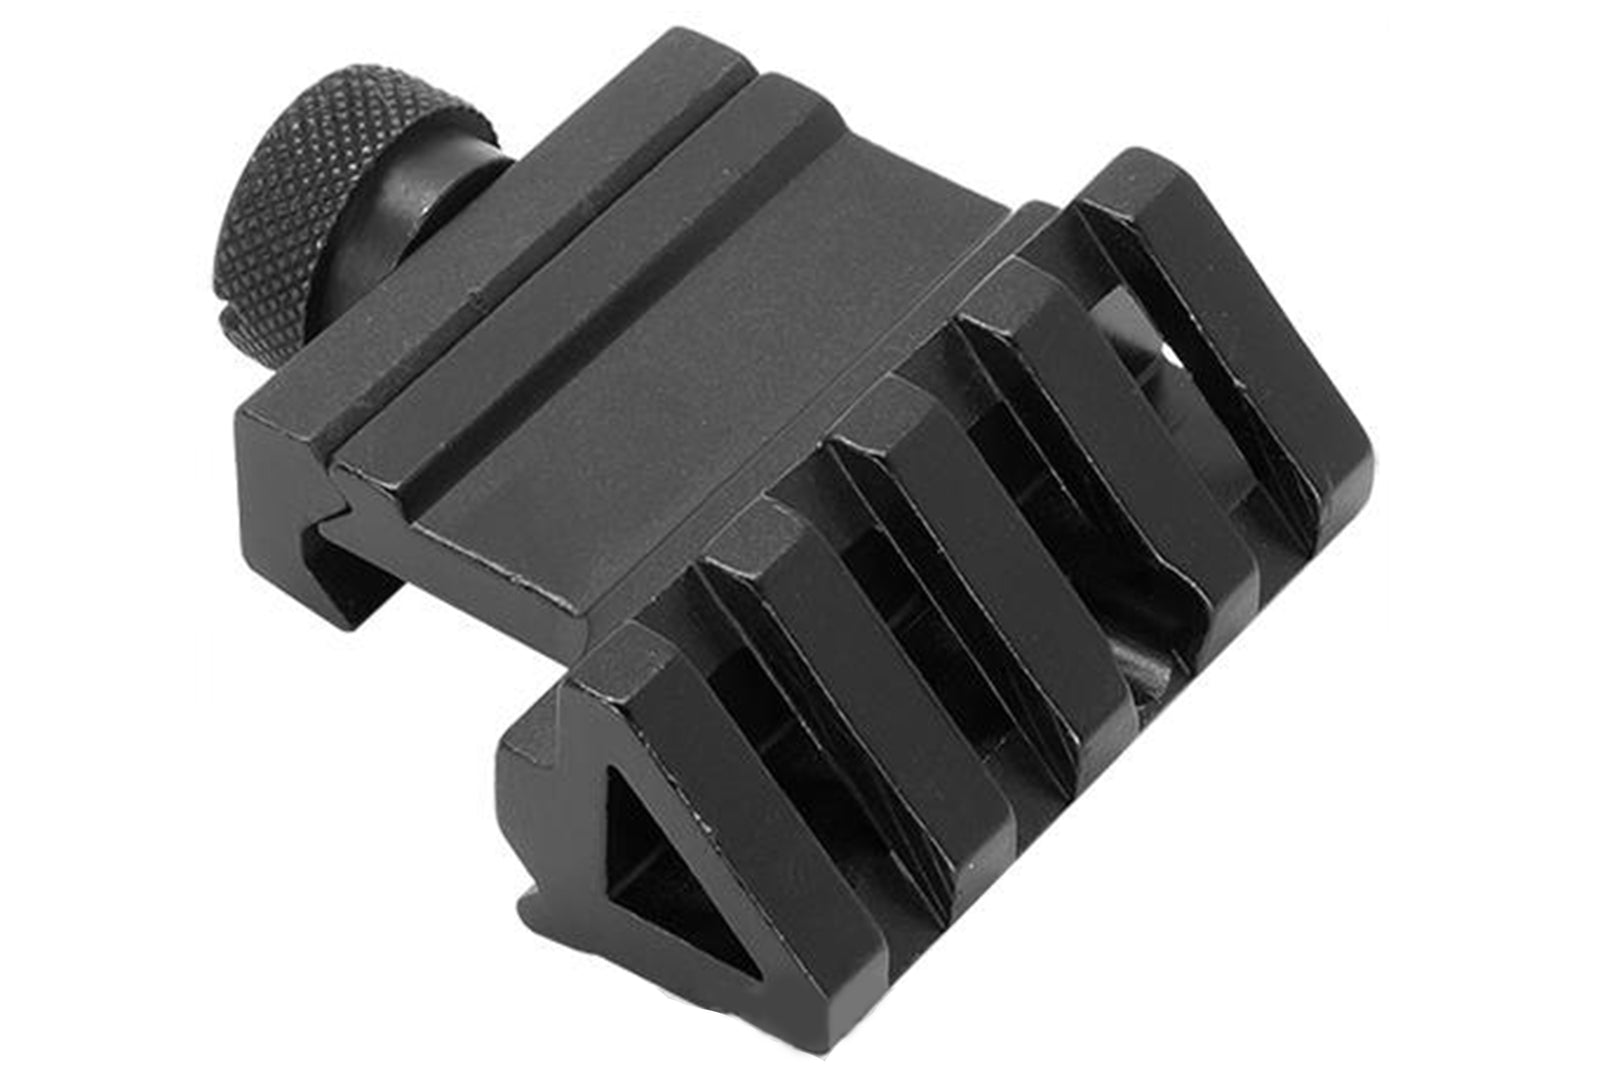 45 Degree Offset Rail Mount with QD Weaver Style Attachment